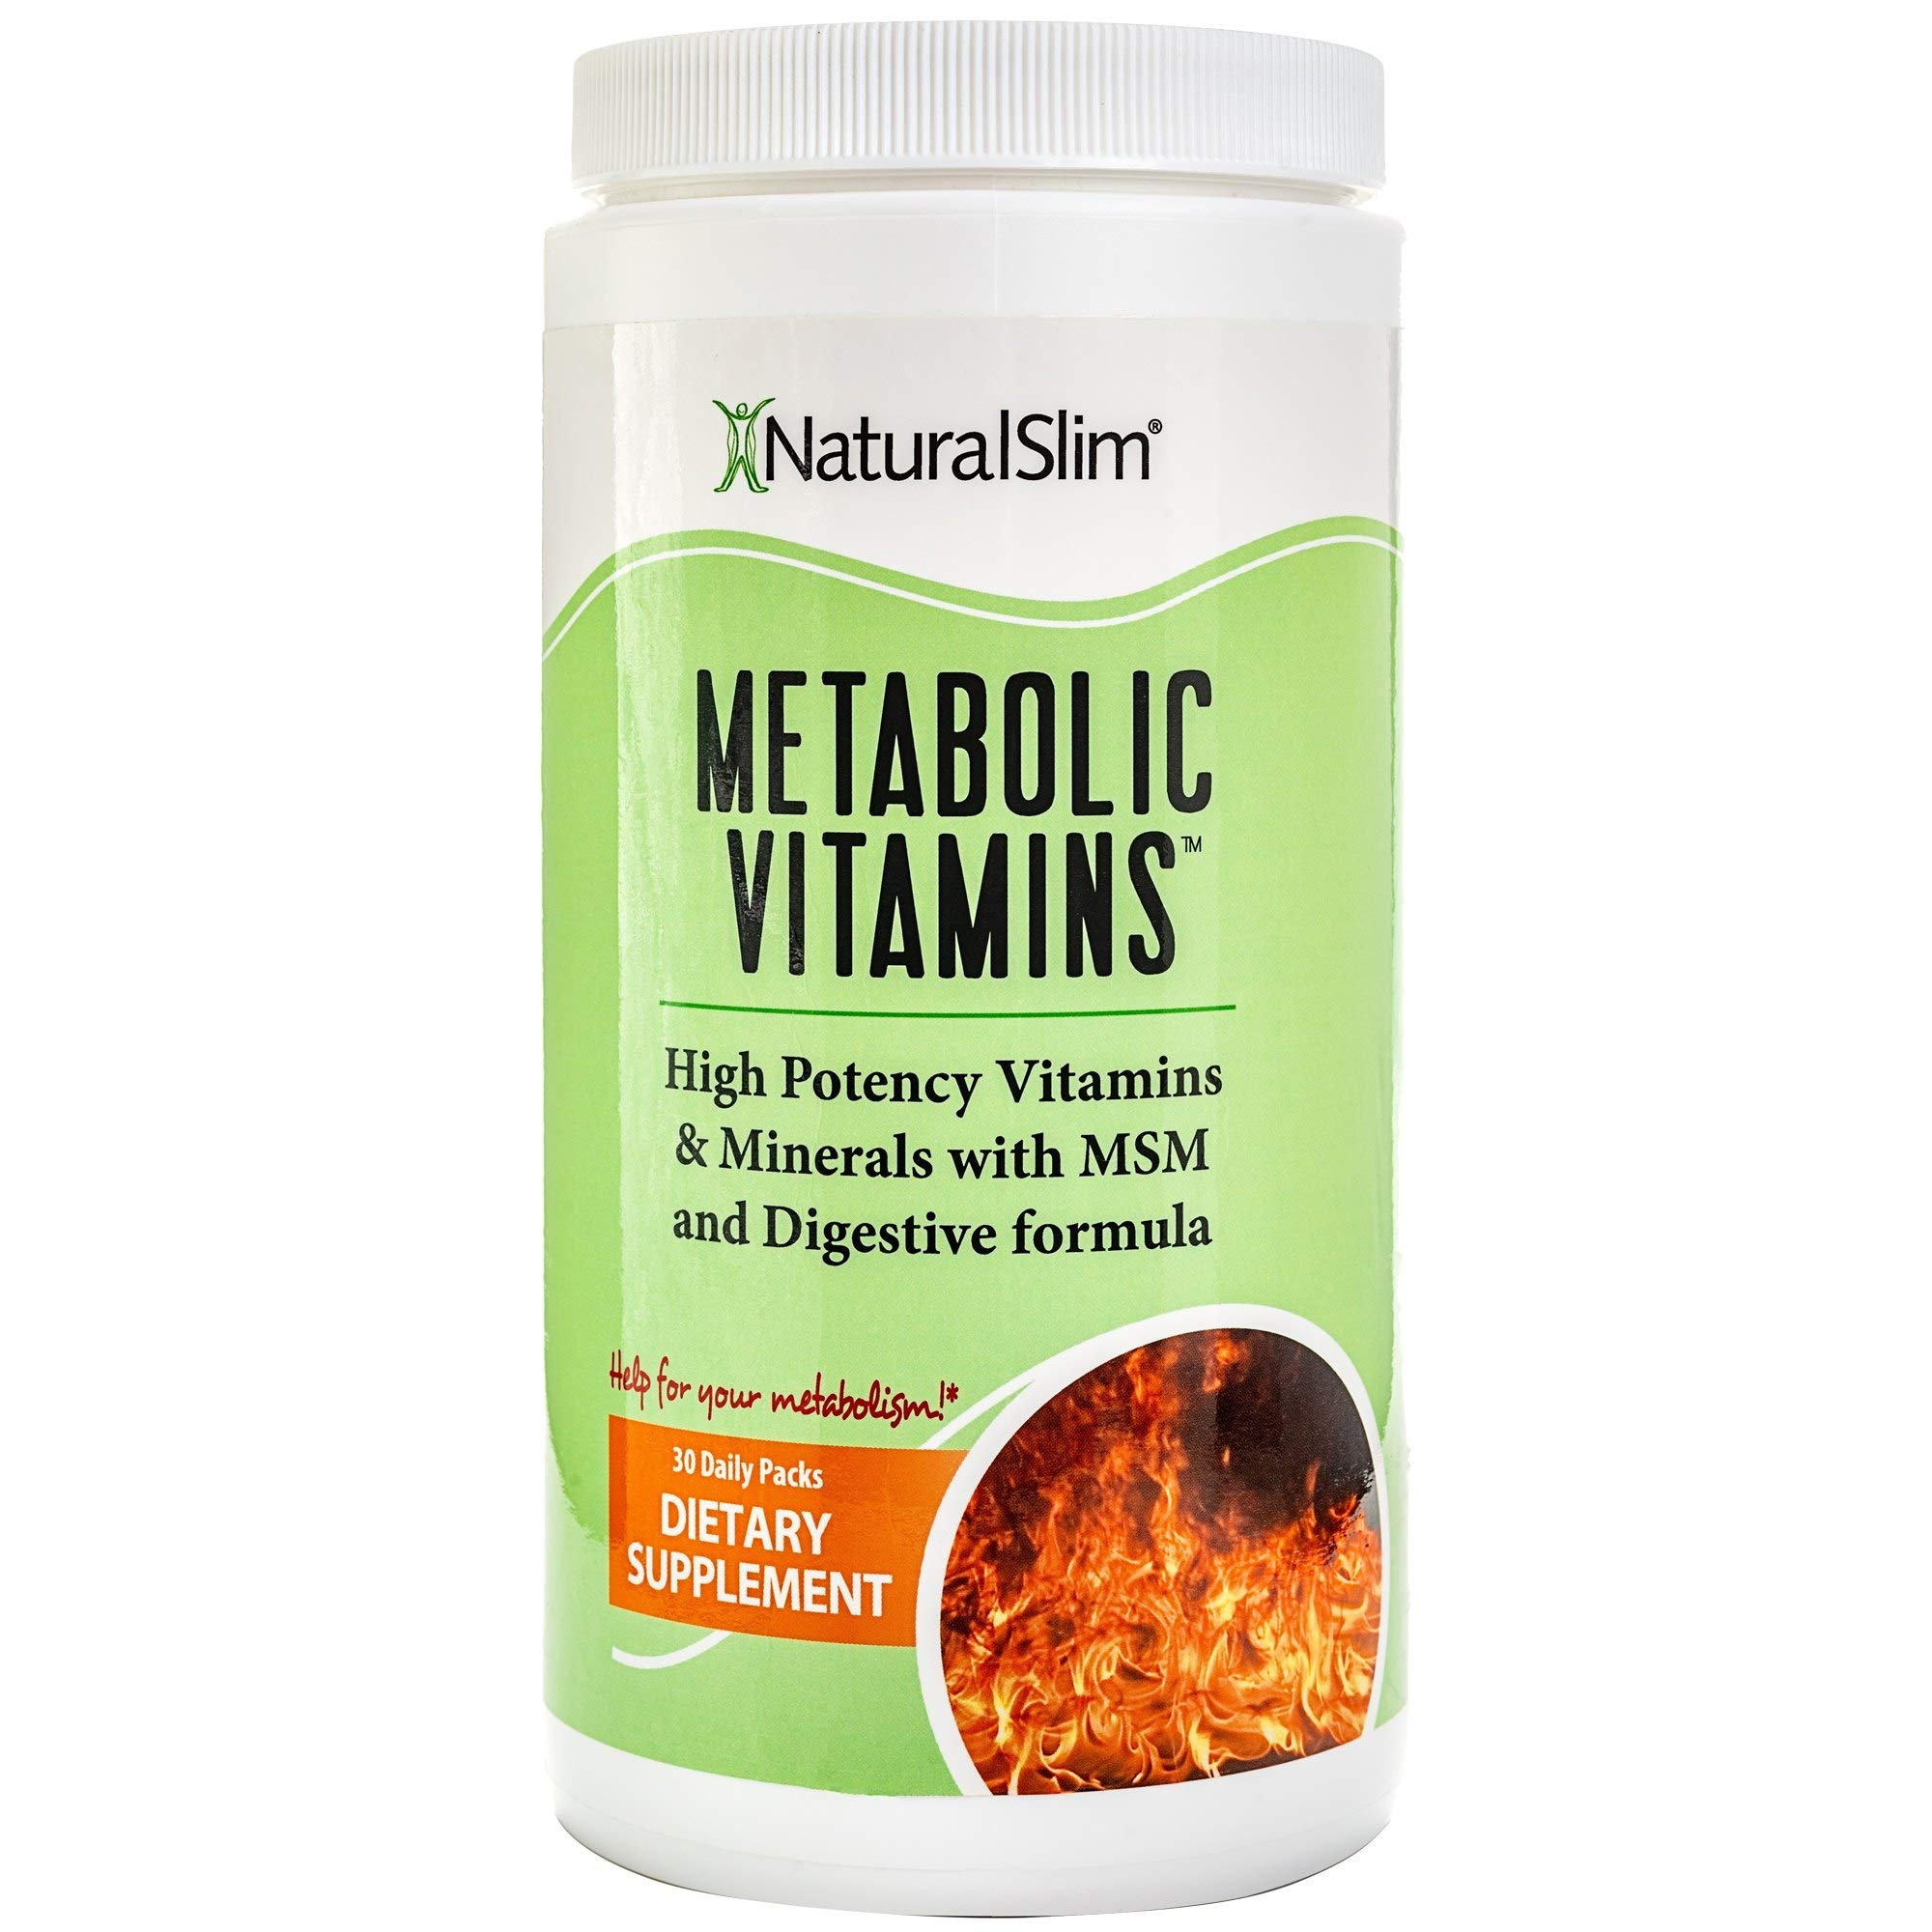 NaturalSlim Metabolic Vitamins, Formulated by Award Winning Metabolism and Weight Loss Specialist- High Potency Vitamins and Minerals with MSM and Digestive Formula by RelaxSlim